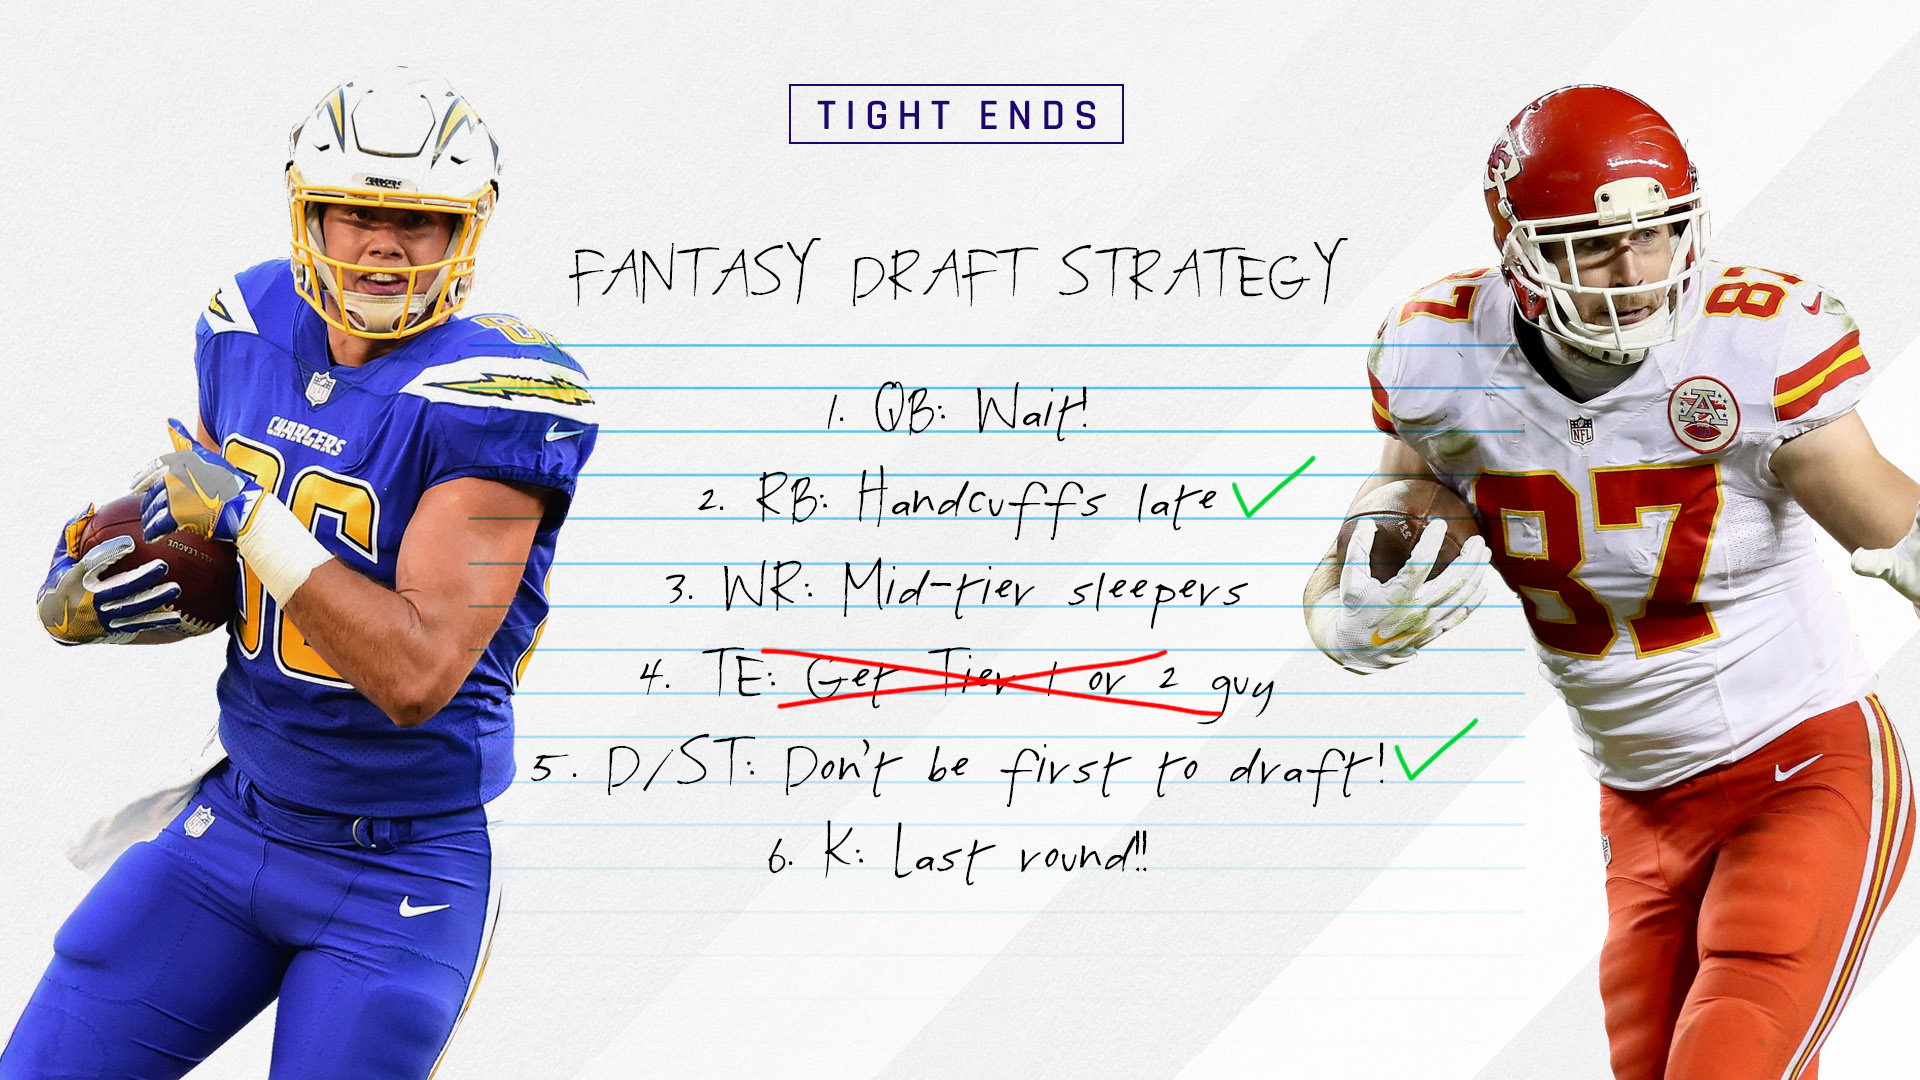 2017 Fantasy Football Rankings Tiers, Draft Strategy: Tight ends ...